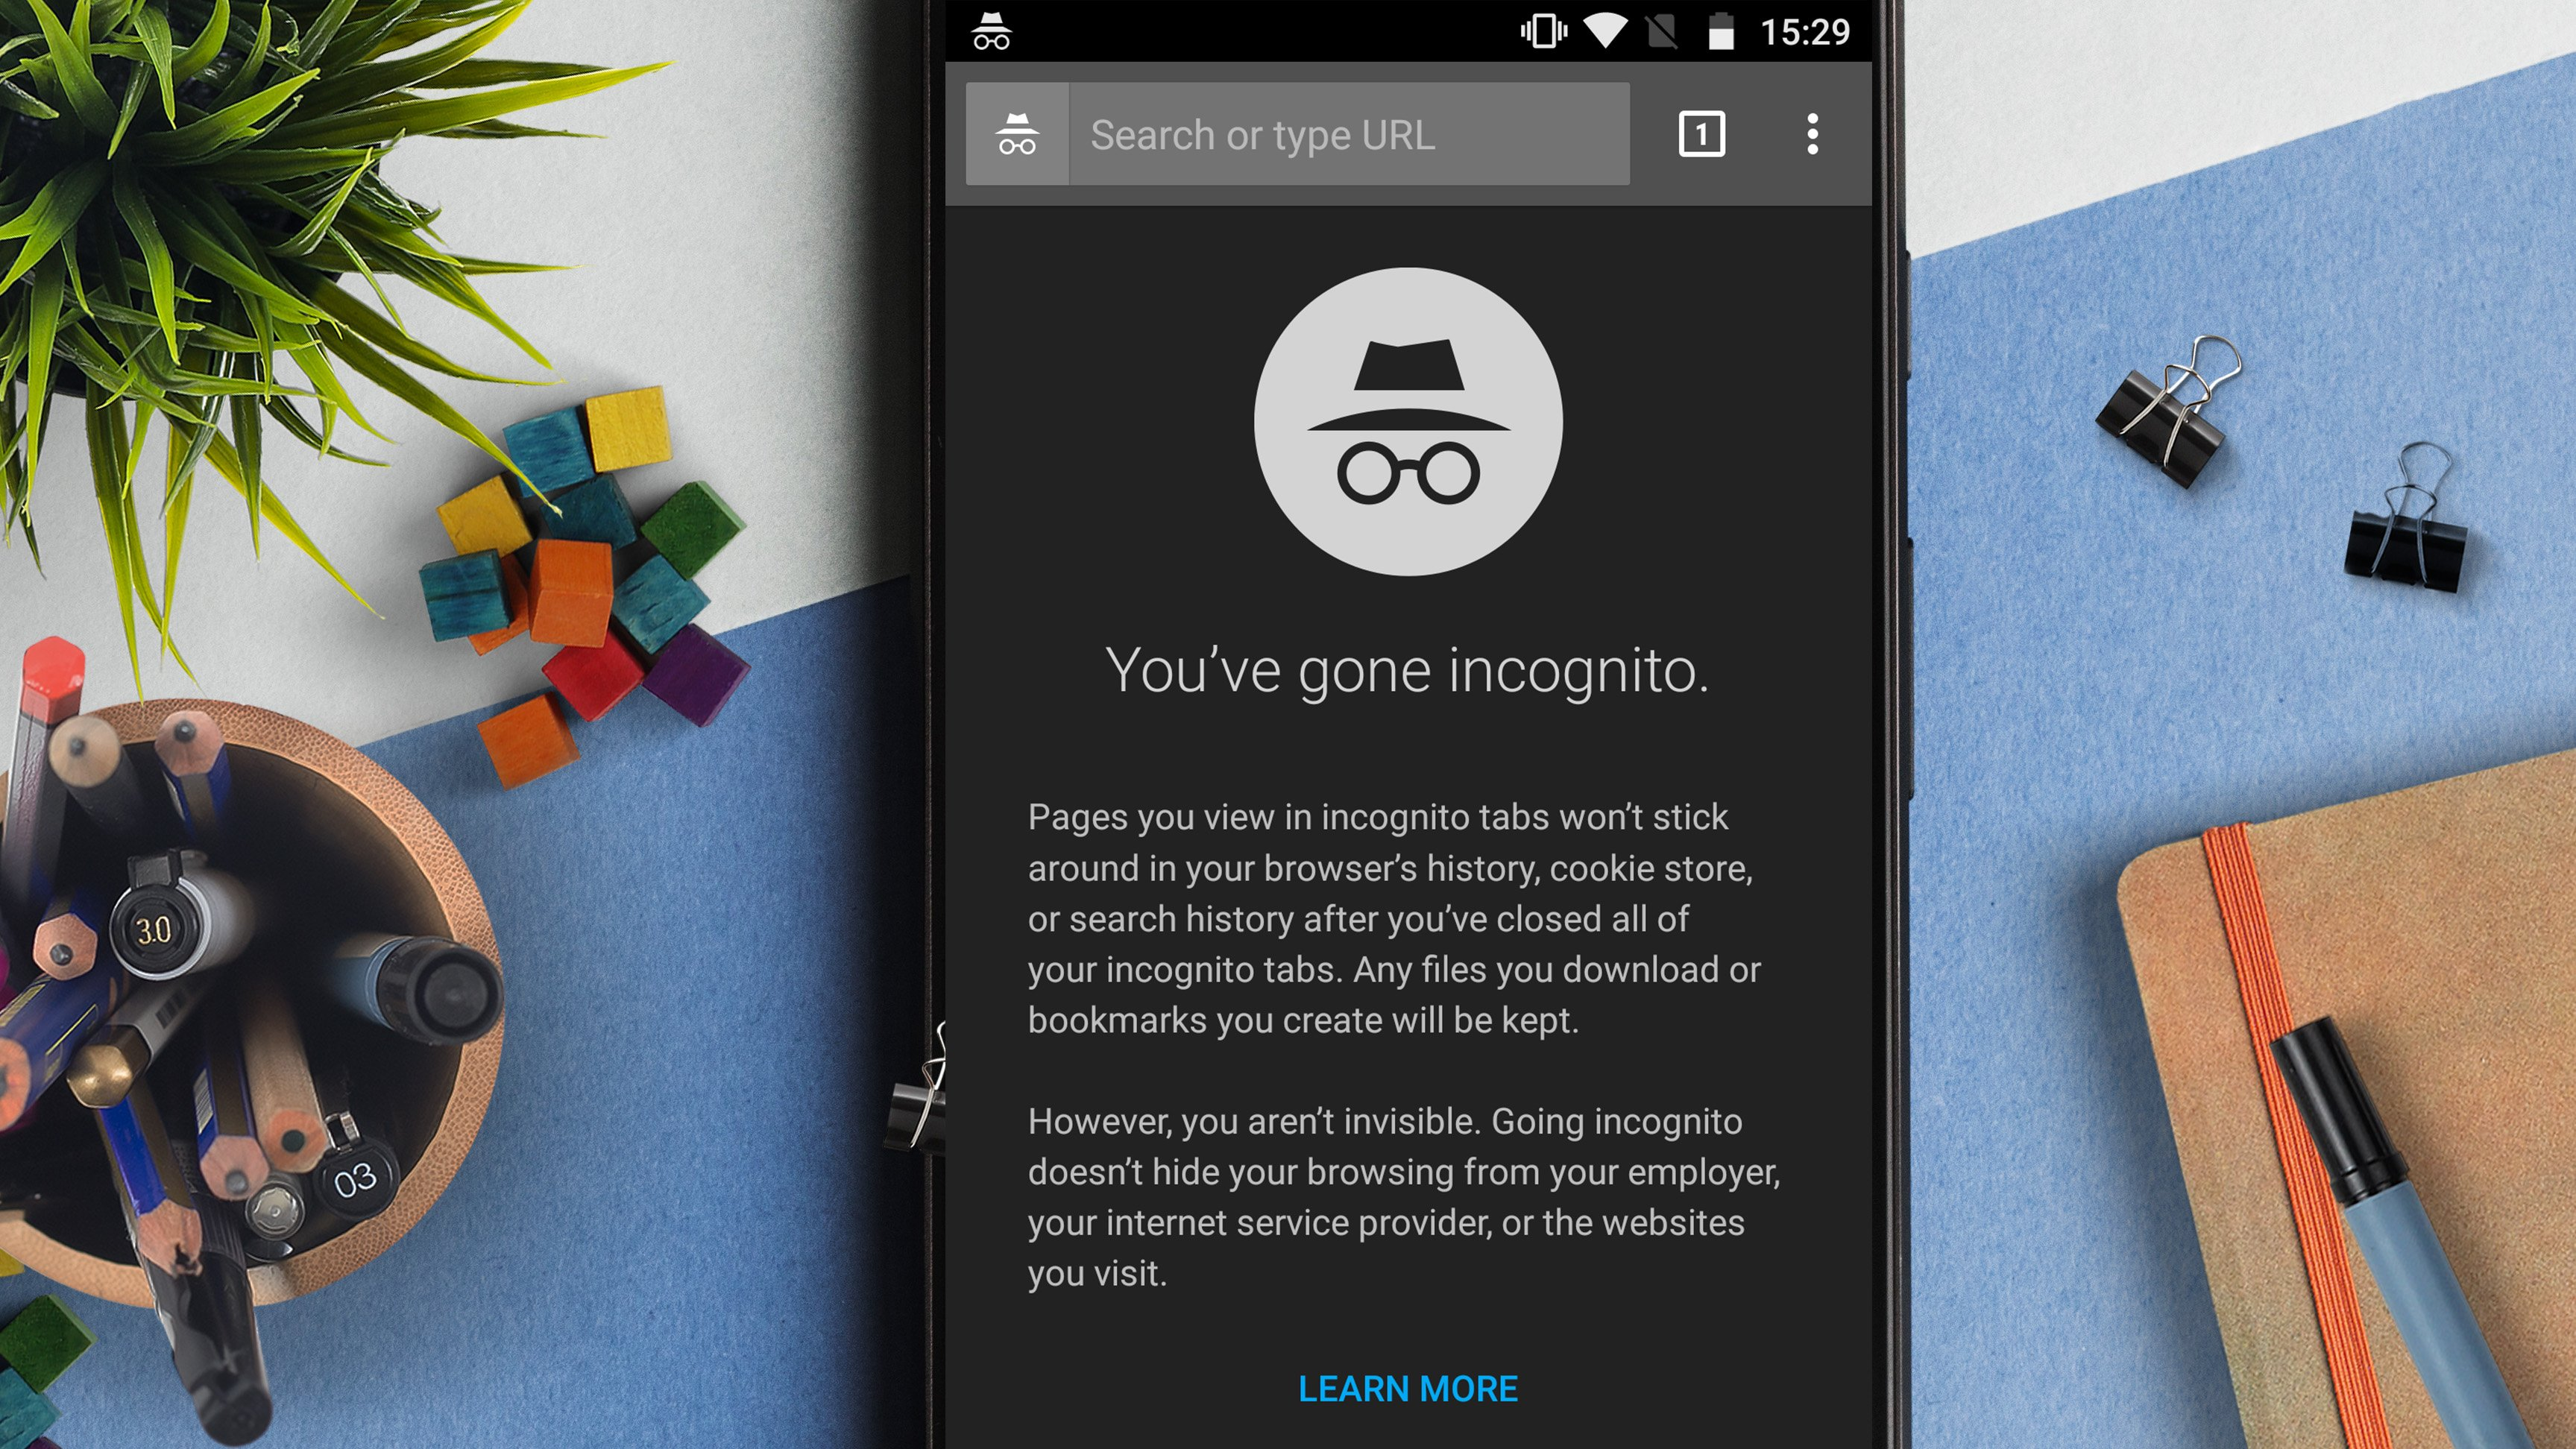 Chrome's incognito mode isn't as private as you might think | AndroidPIT